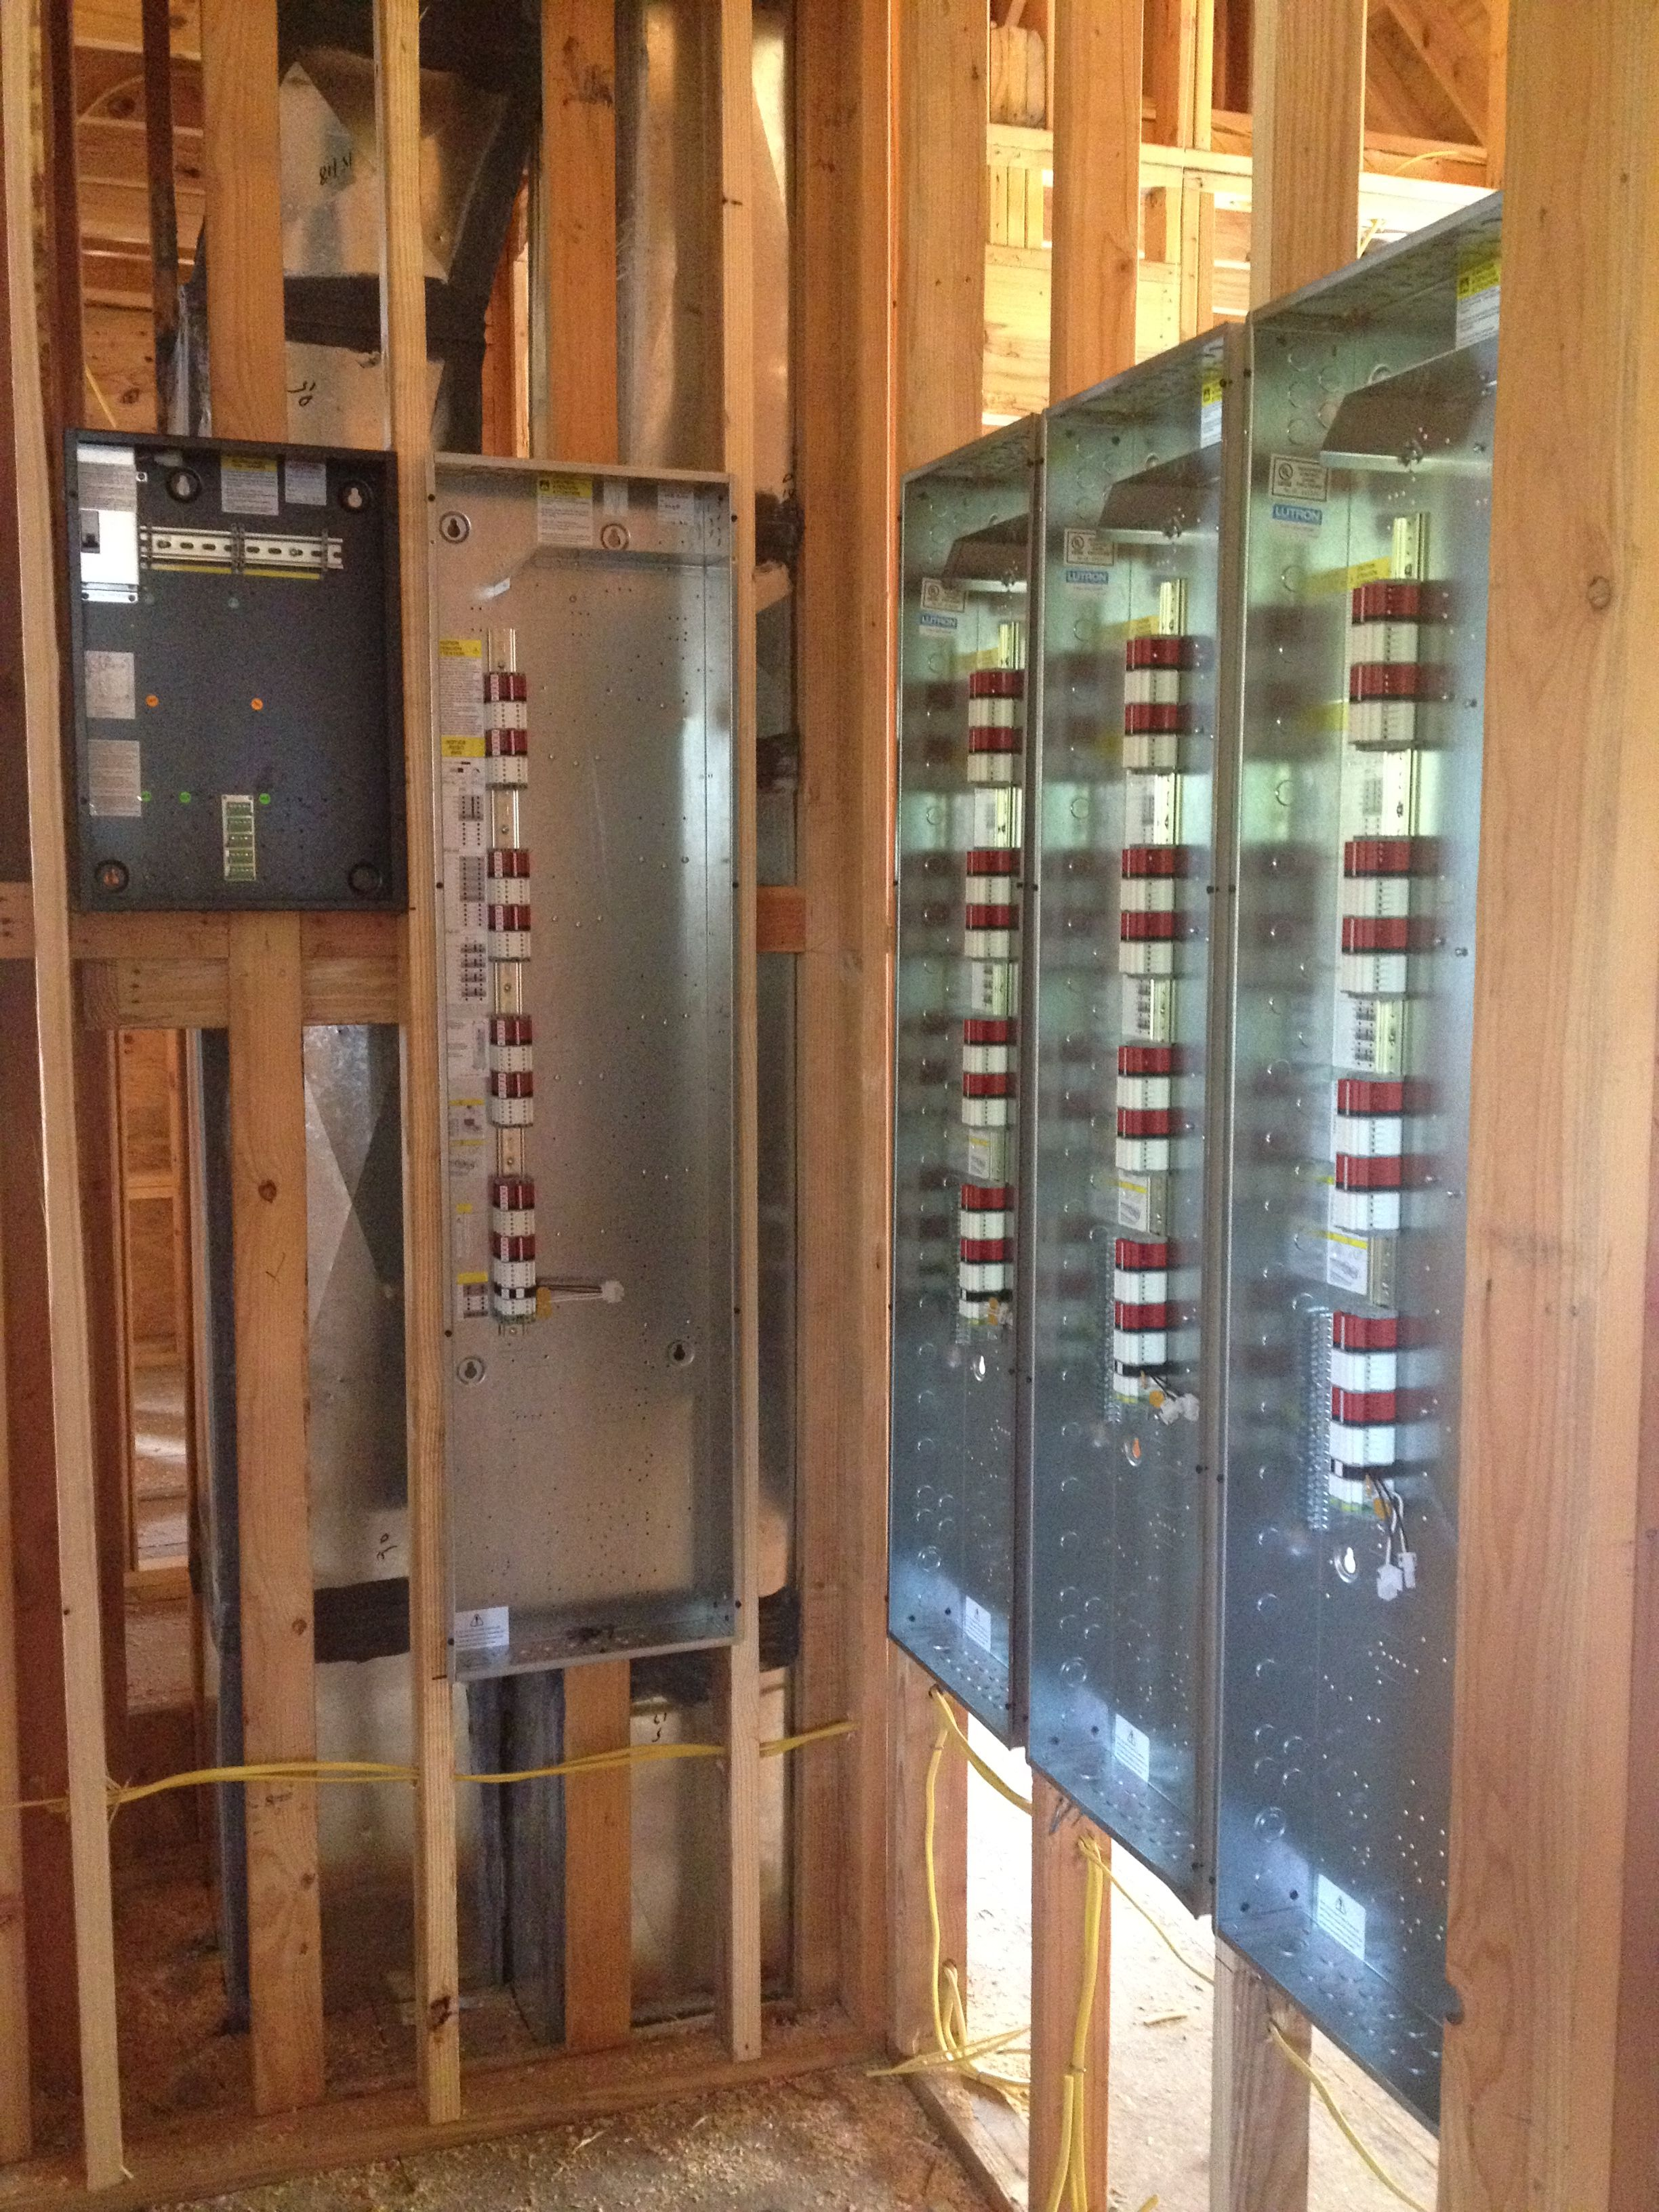 Lutron Homeworks - Whole house lighting control system being ...